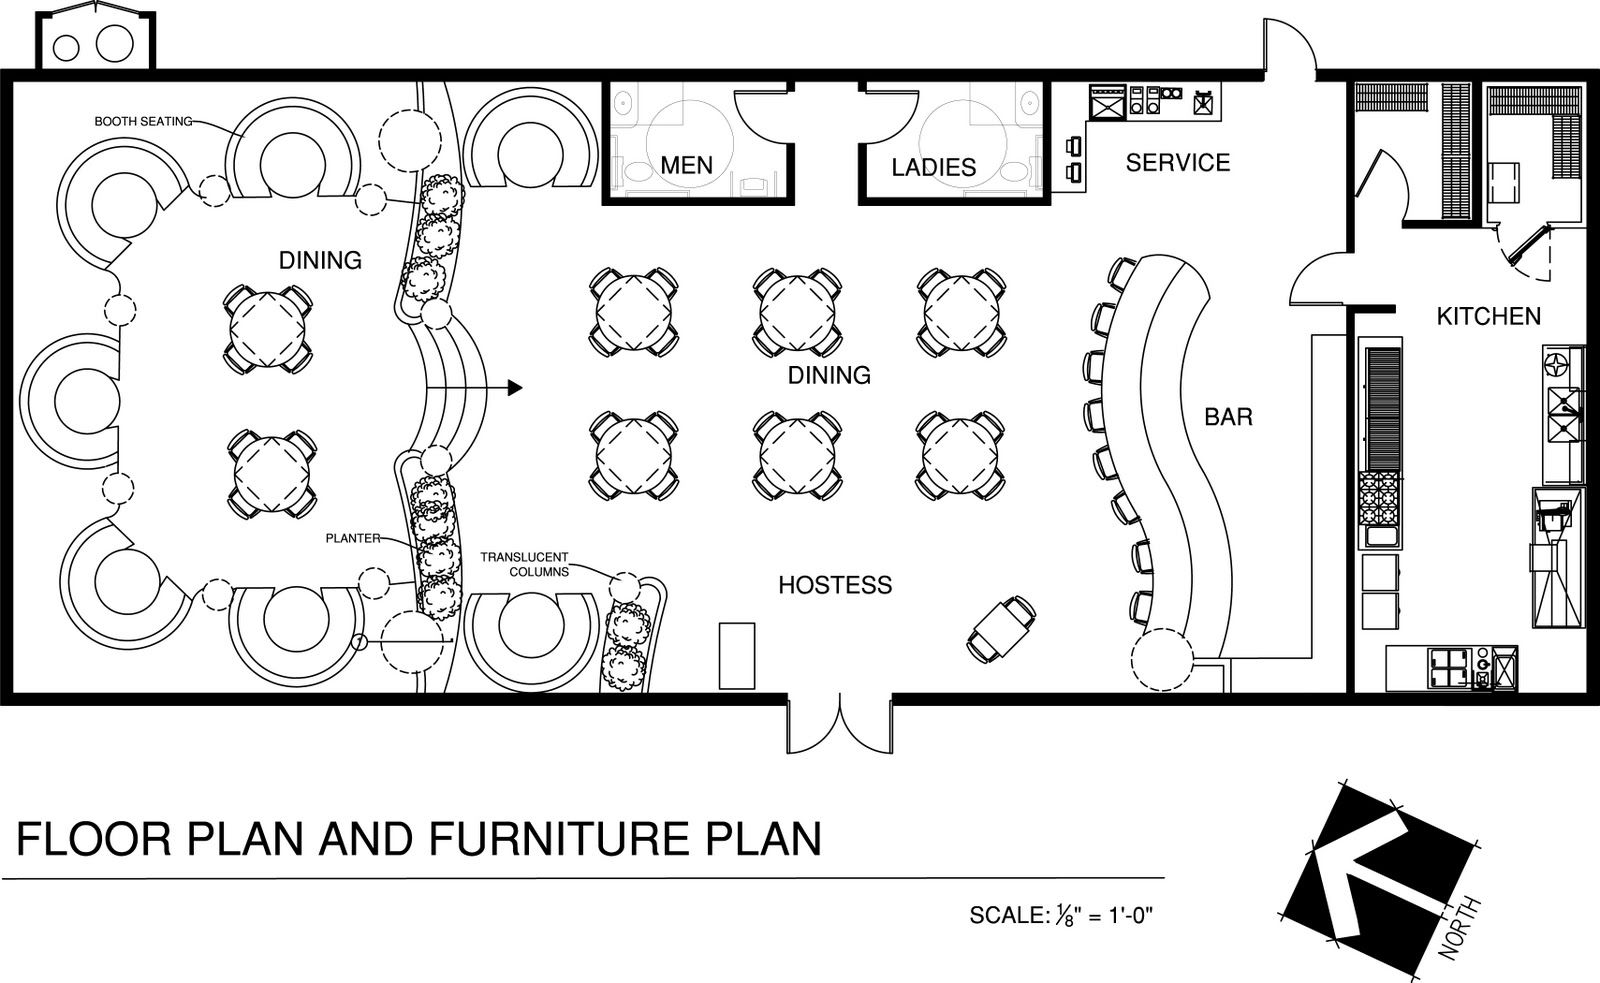 Design Restaurant Floor Plan Fresh Furniture Idea Upper